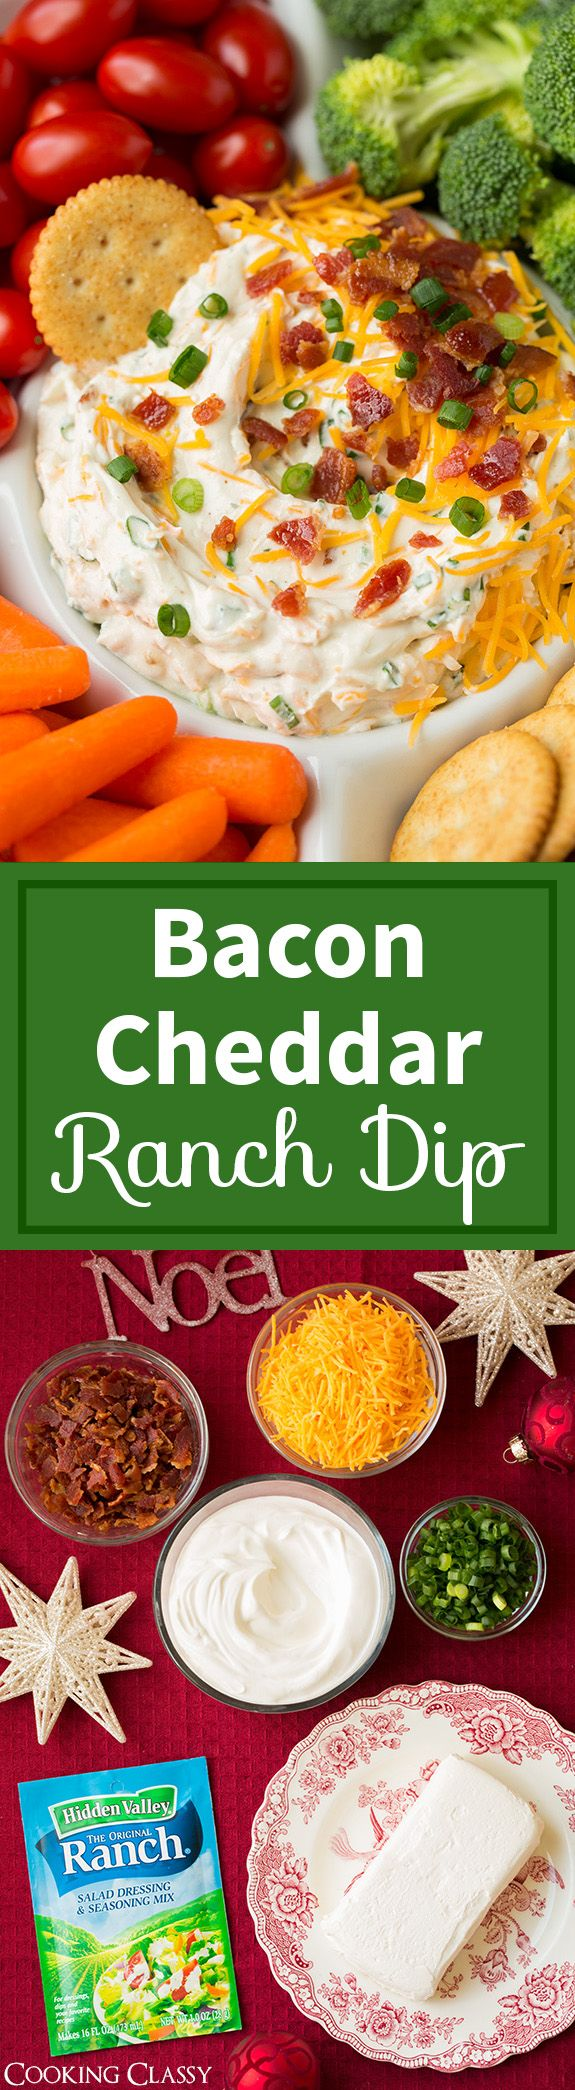 All Food and Drink: Bacon Cheddar Ranch Dip - Cooking Classy